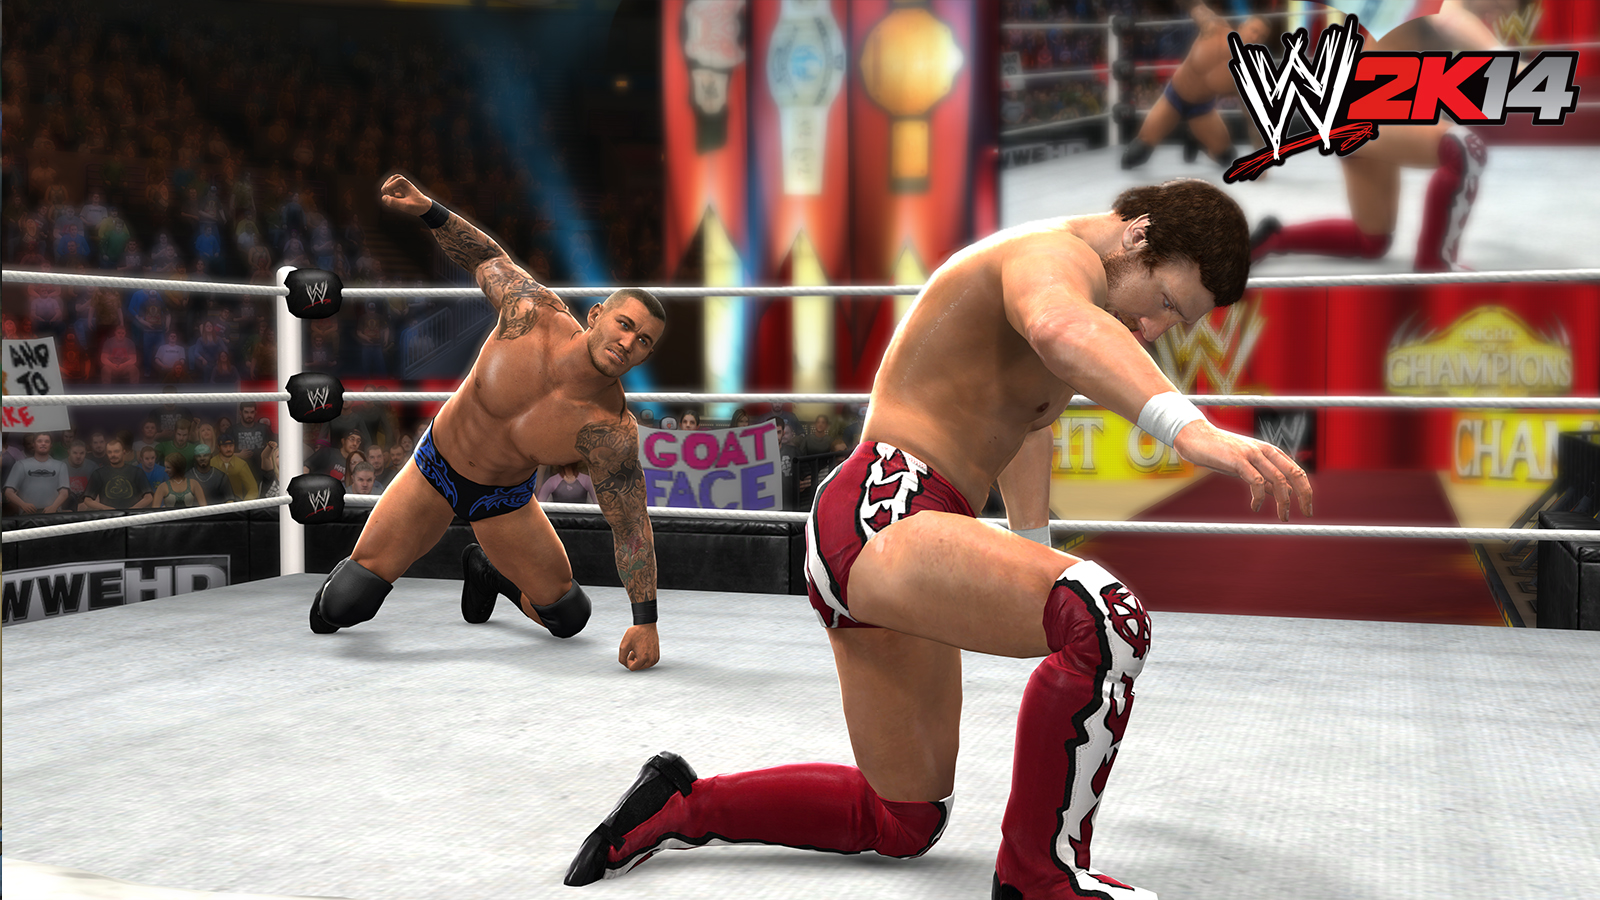 Wwe 2k14 review 30 years of wrestlemania game time